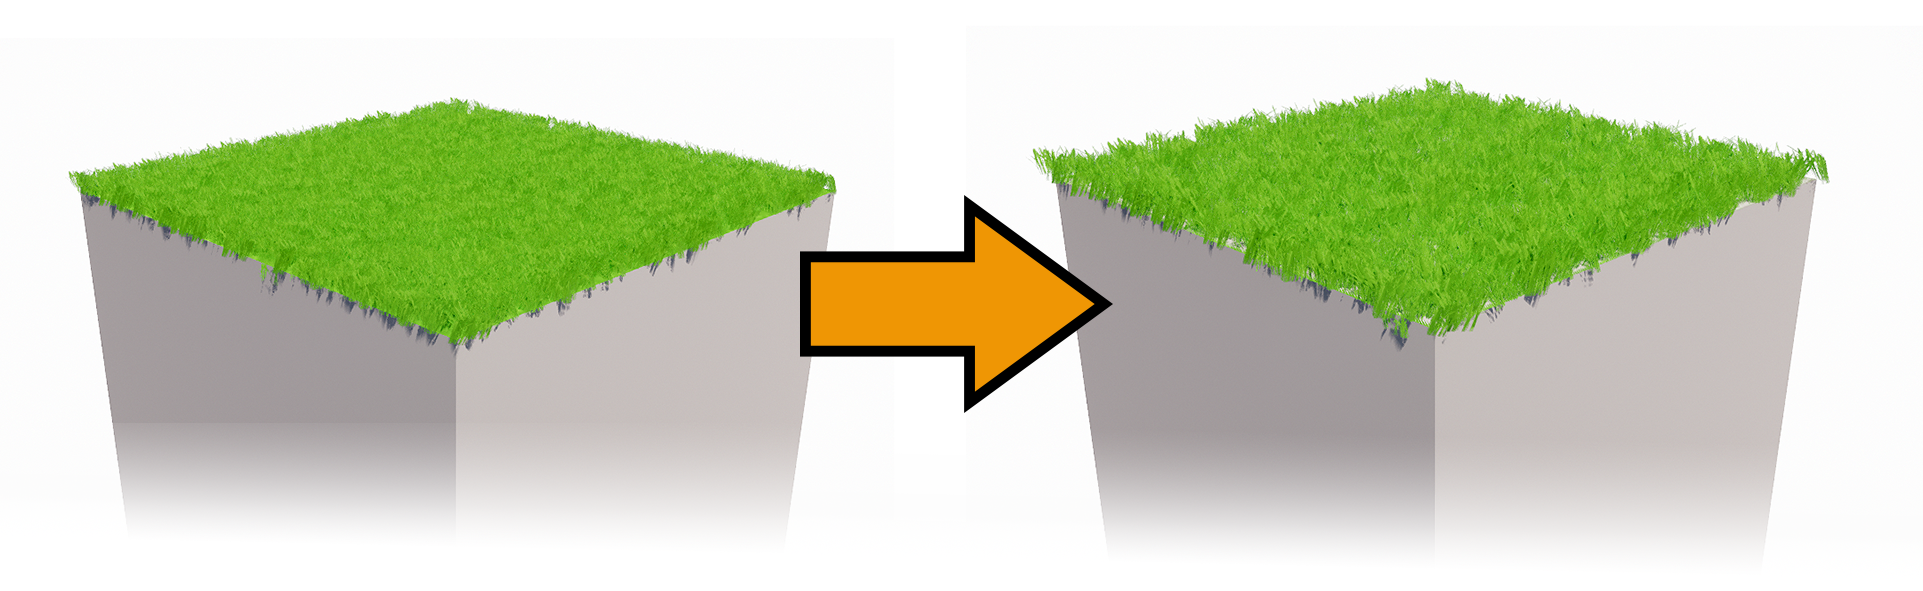 Changing the variation of the grass